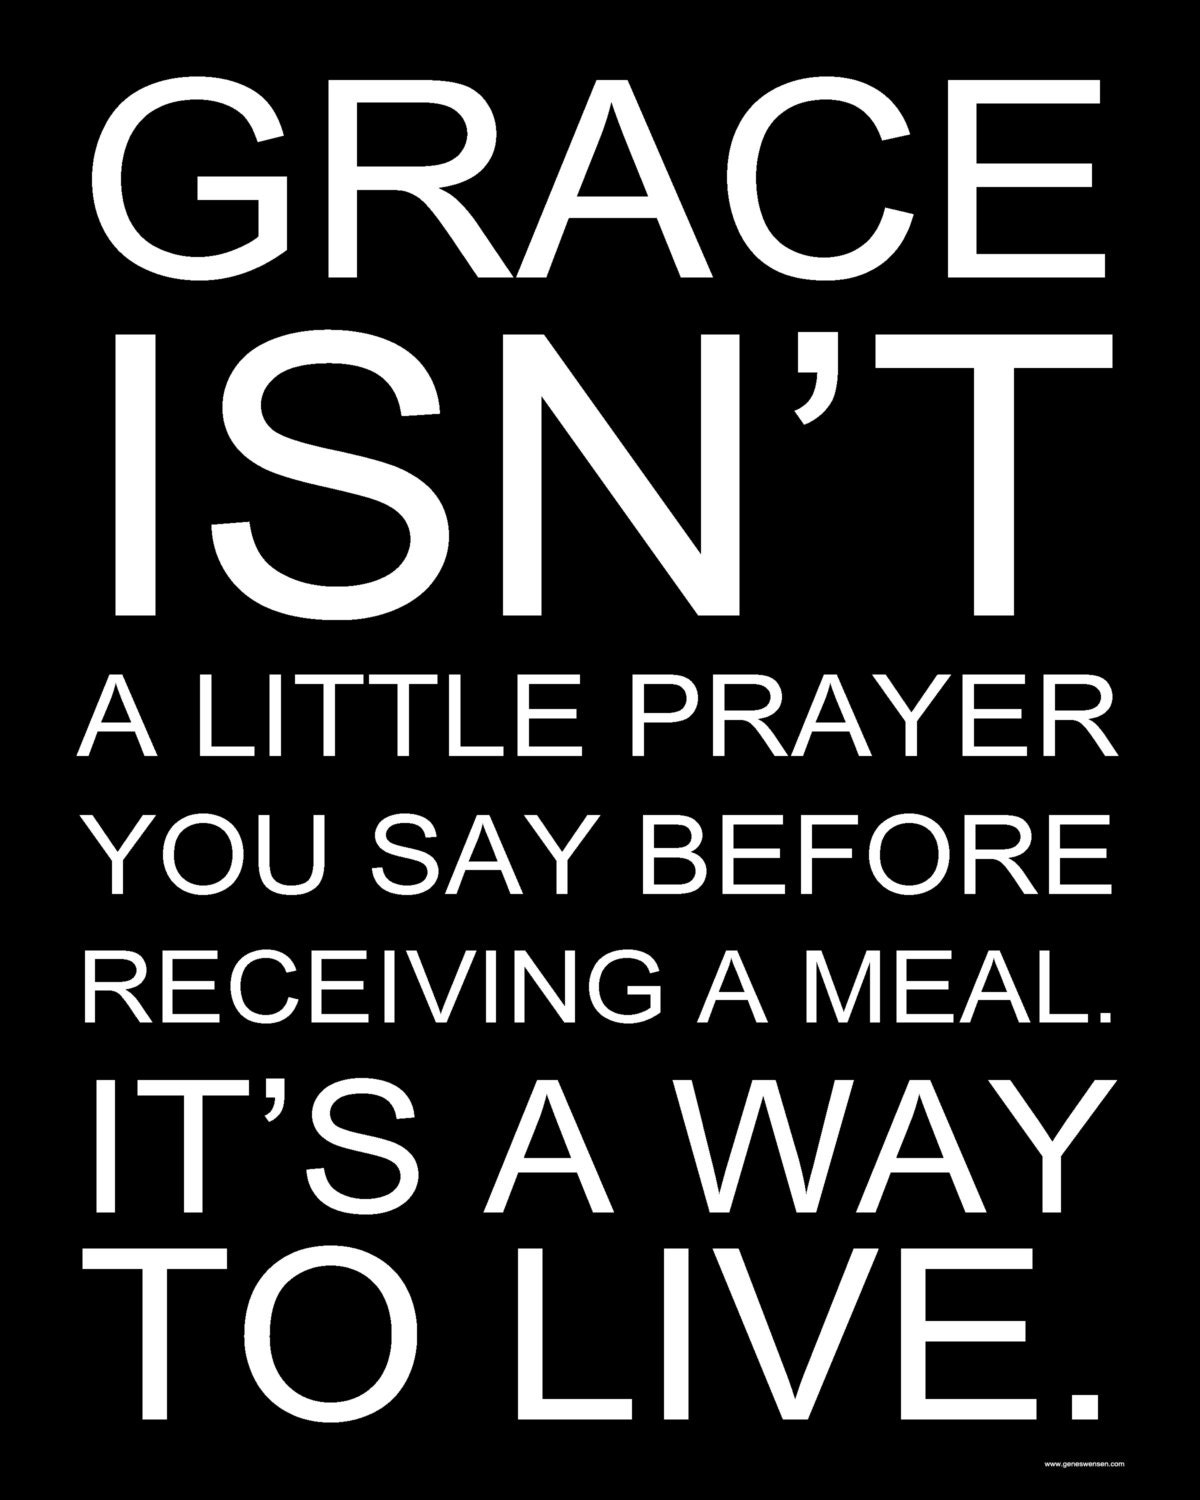 Grace Isn't A Little Prayer You Say Before A Meal. It's A Way of LIfe. - 8 x 10 - GeneSwensenStudio